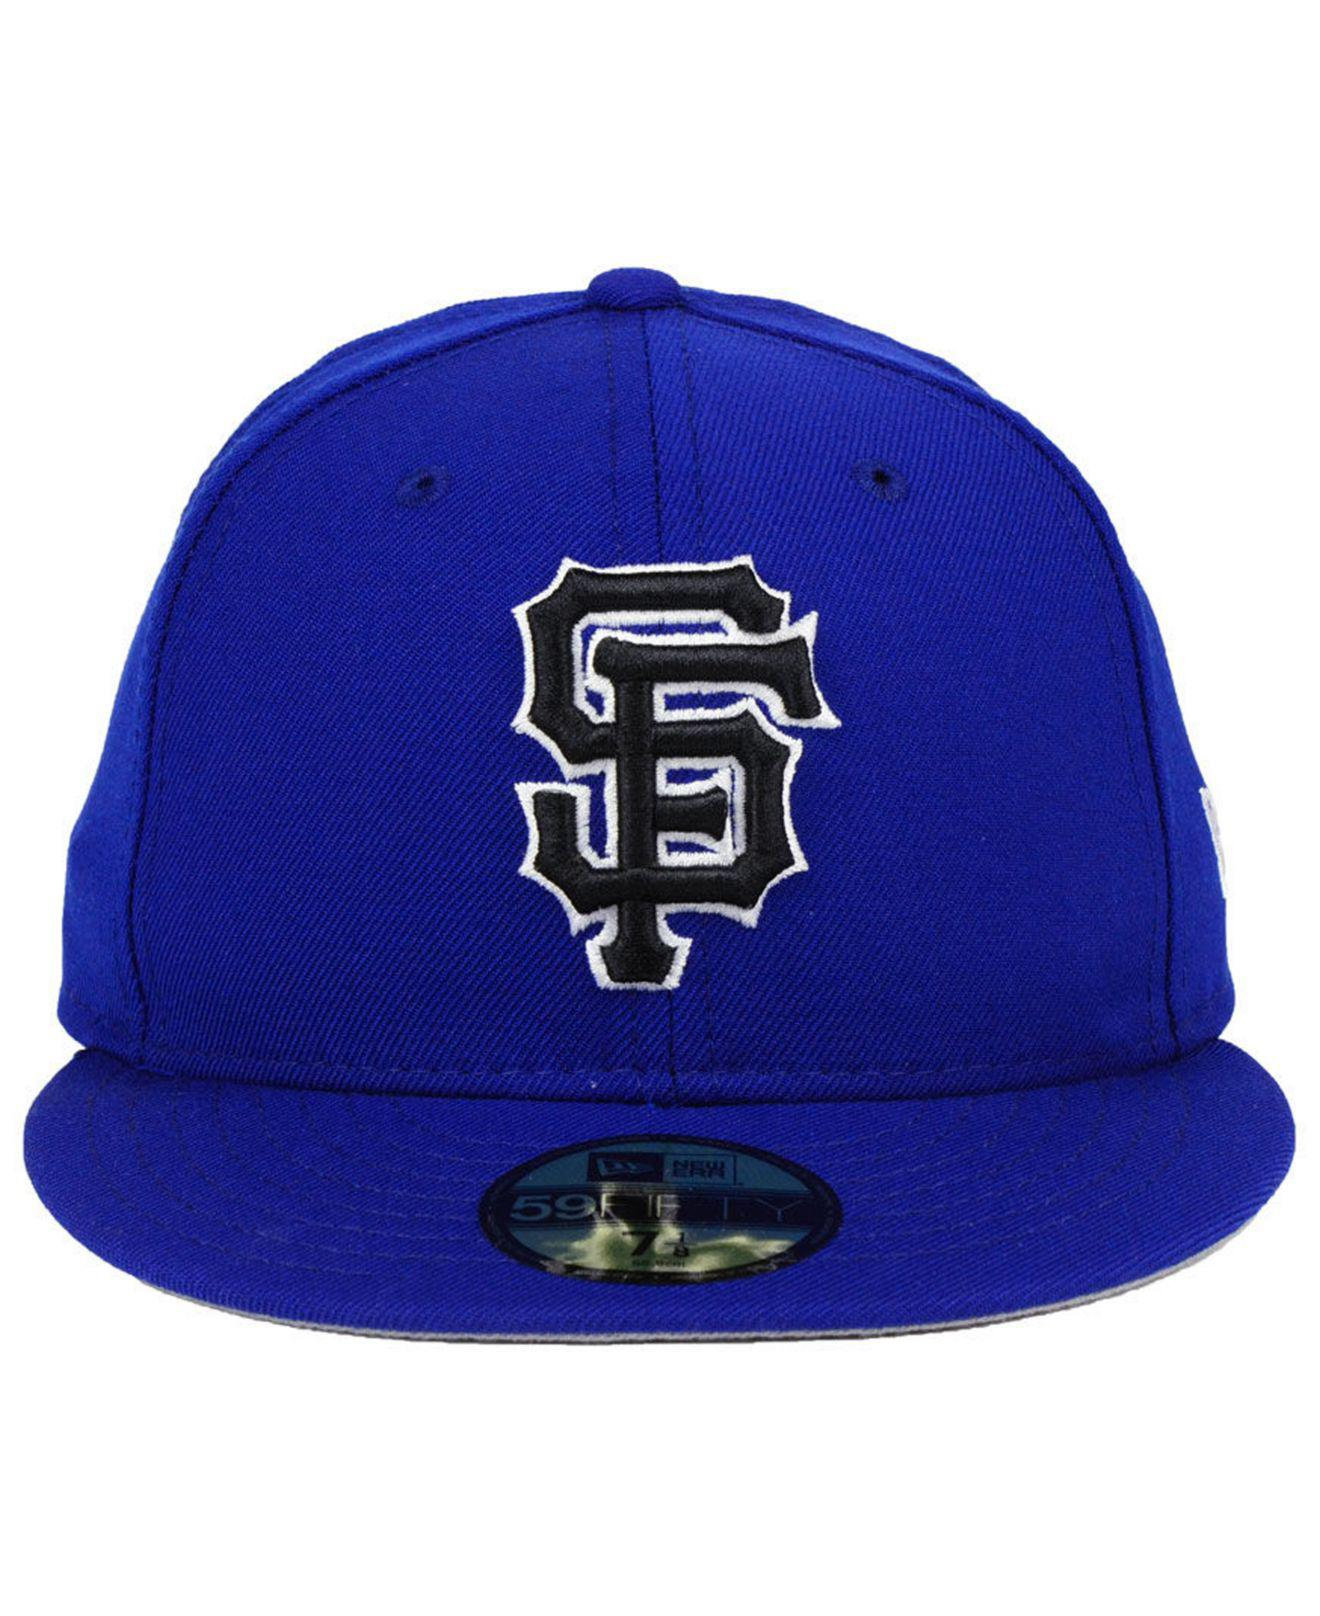 competitive price 7d35a 1628d ... france lyst ktz san francisco giants royal pack 59fifty fitted cap in  blue for men save